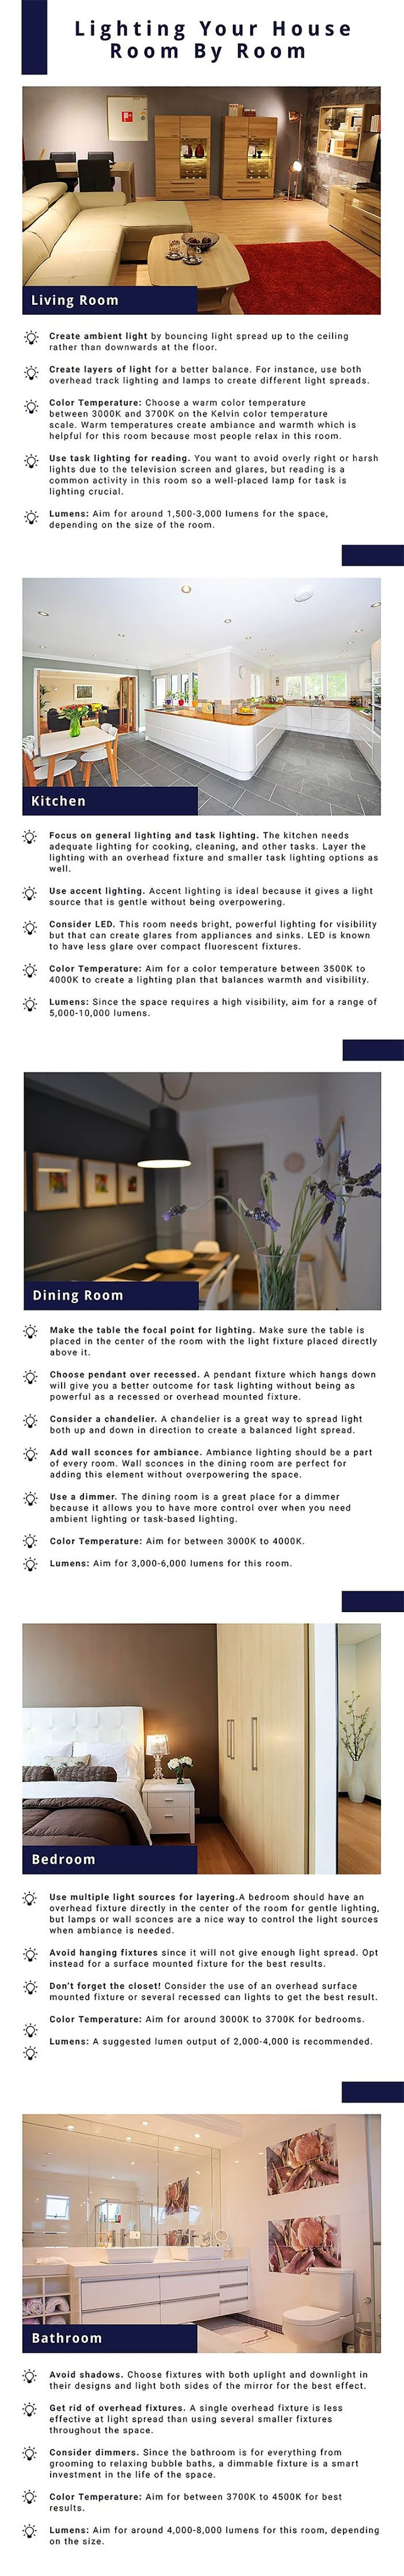 Lighting Your House Room By Room #infographic